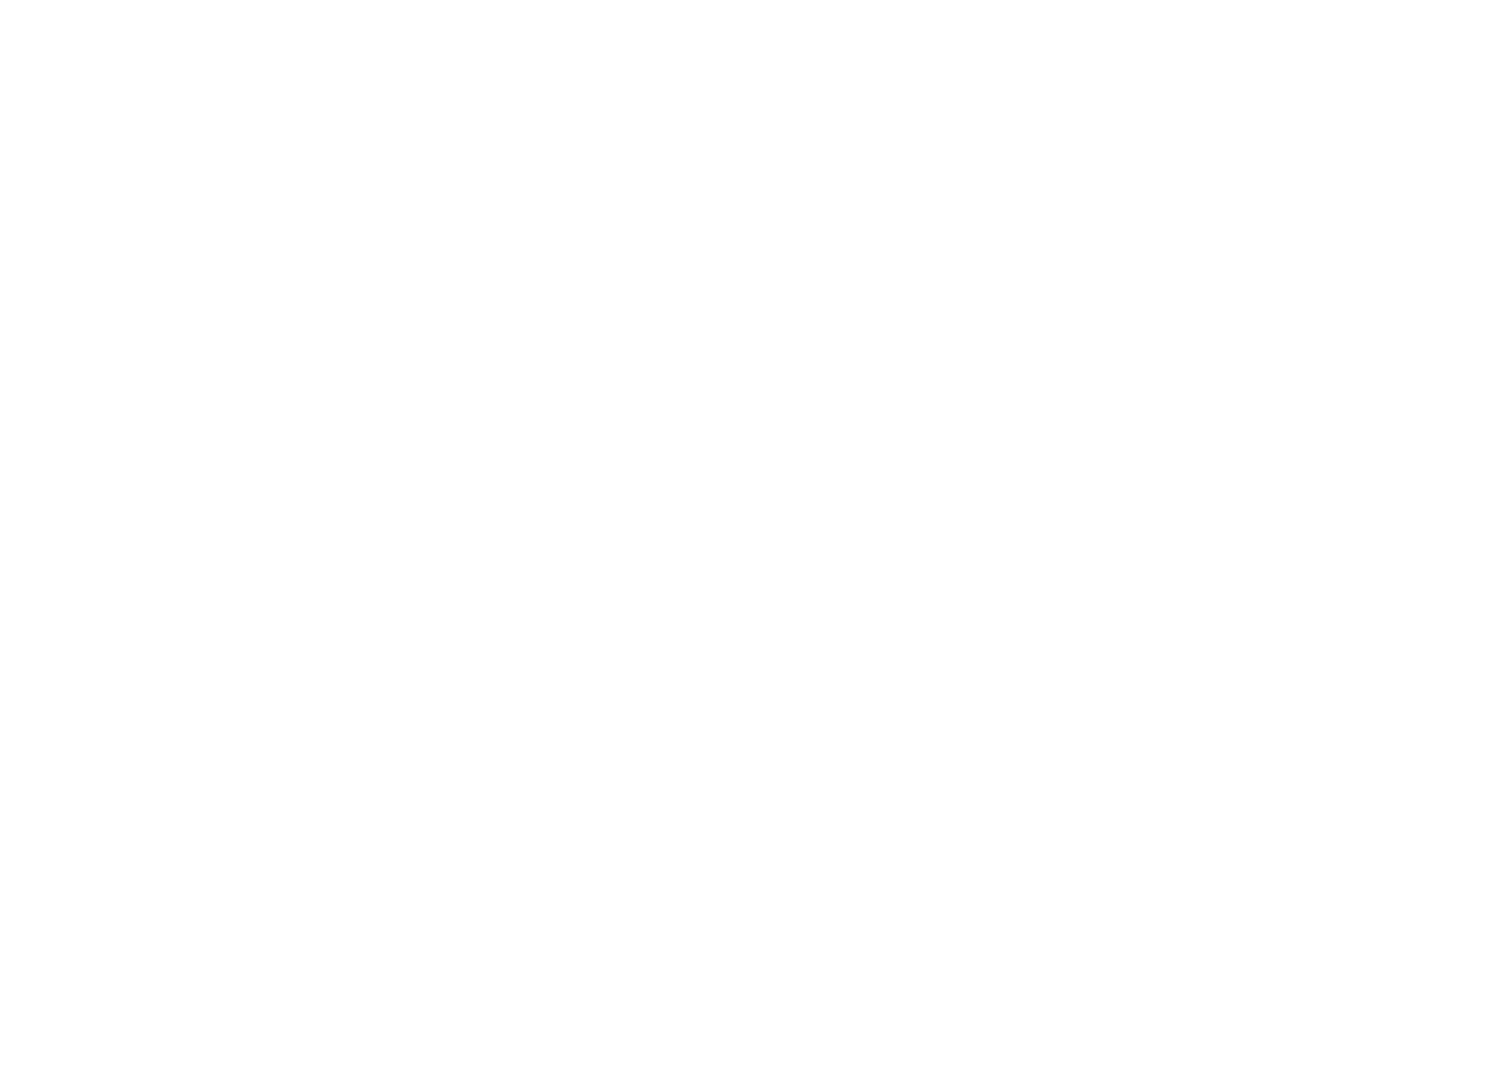 Drop Anchor Films